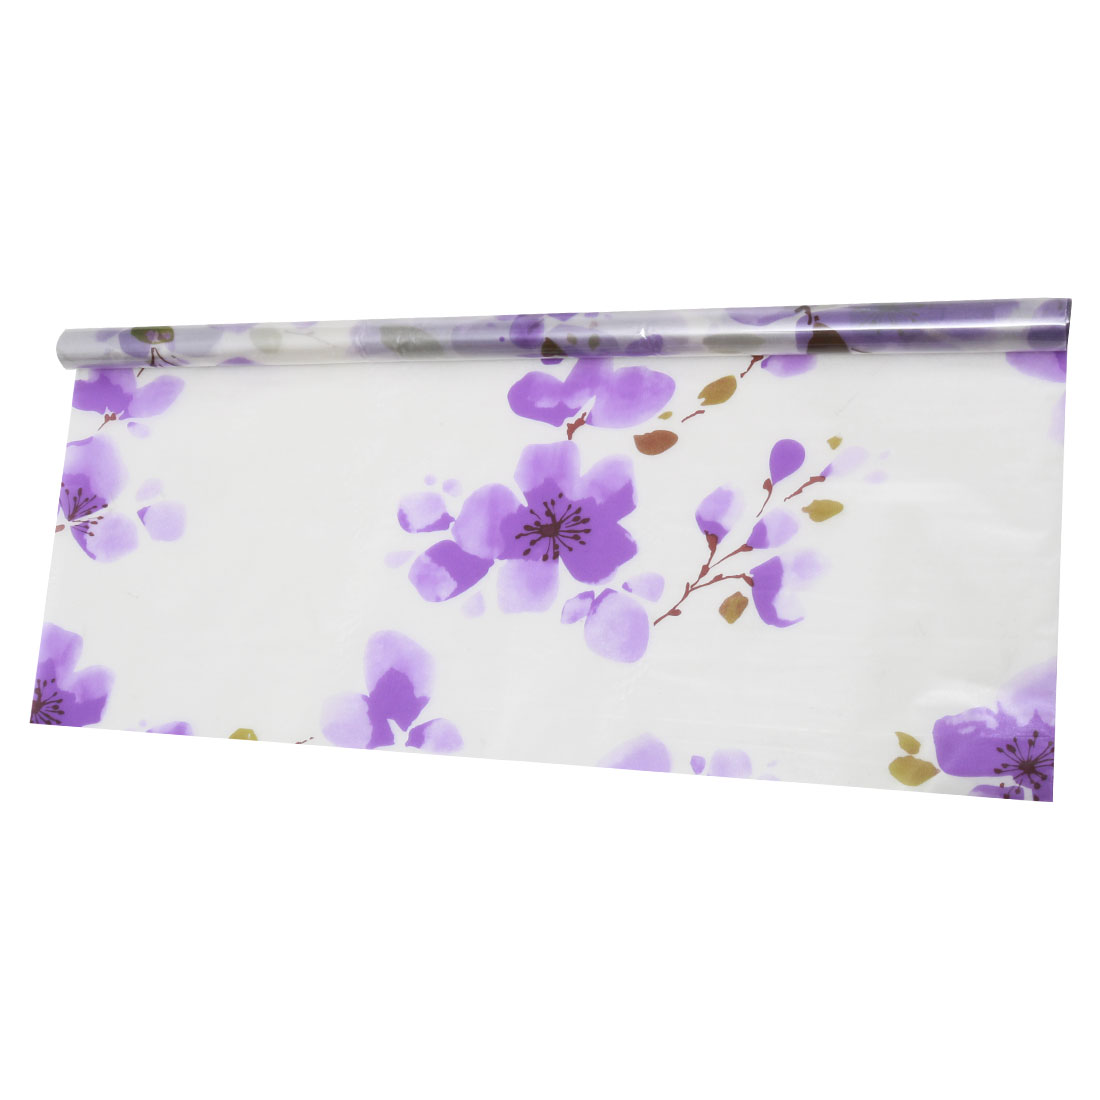 "Self-sticky 23.6"" x 78.7"" Water Resistant Window Film Purple Plum Pattern"